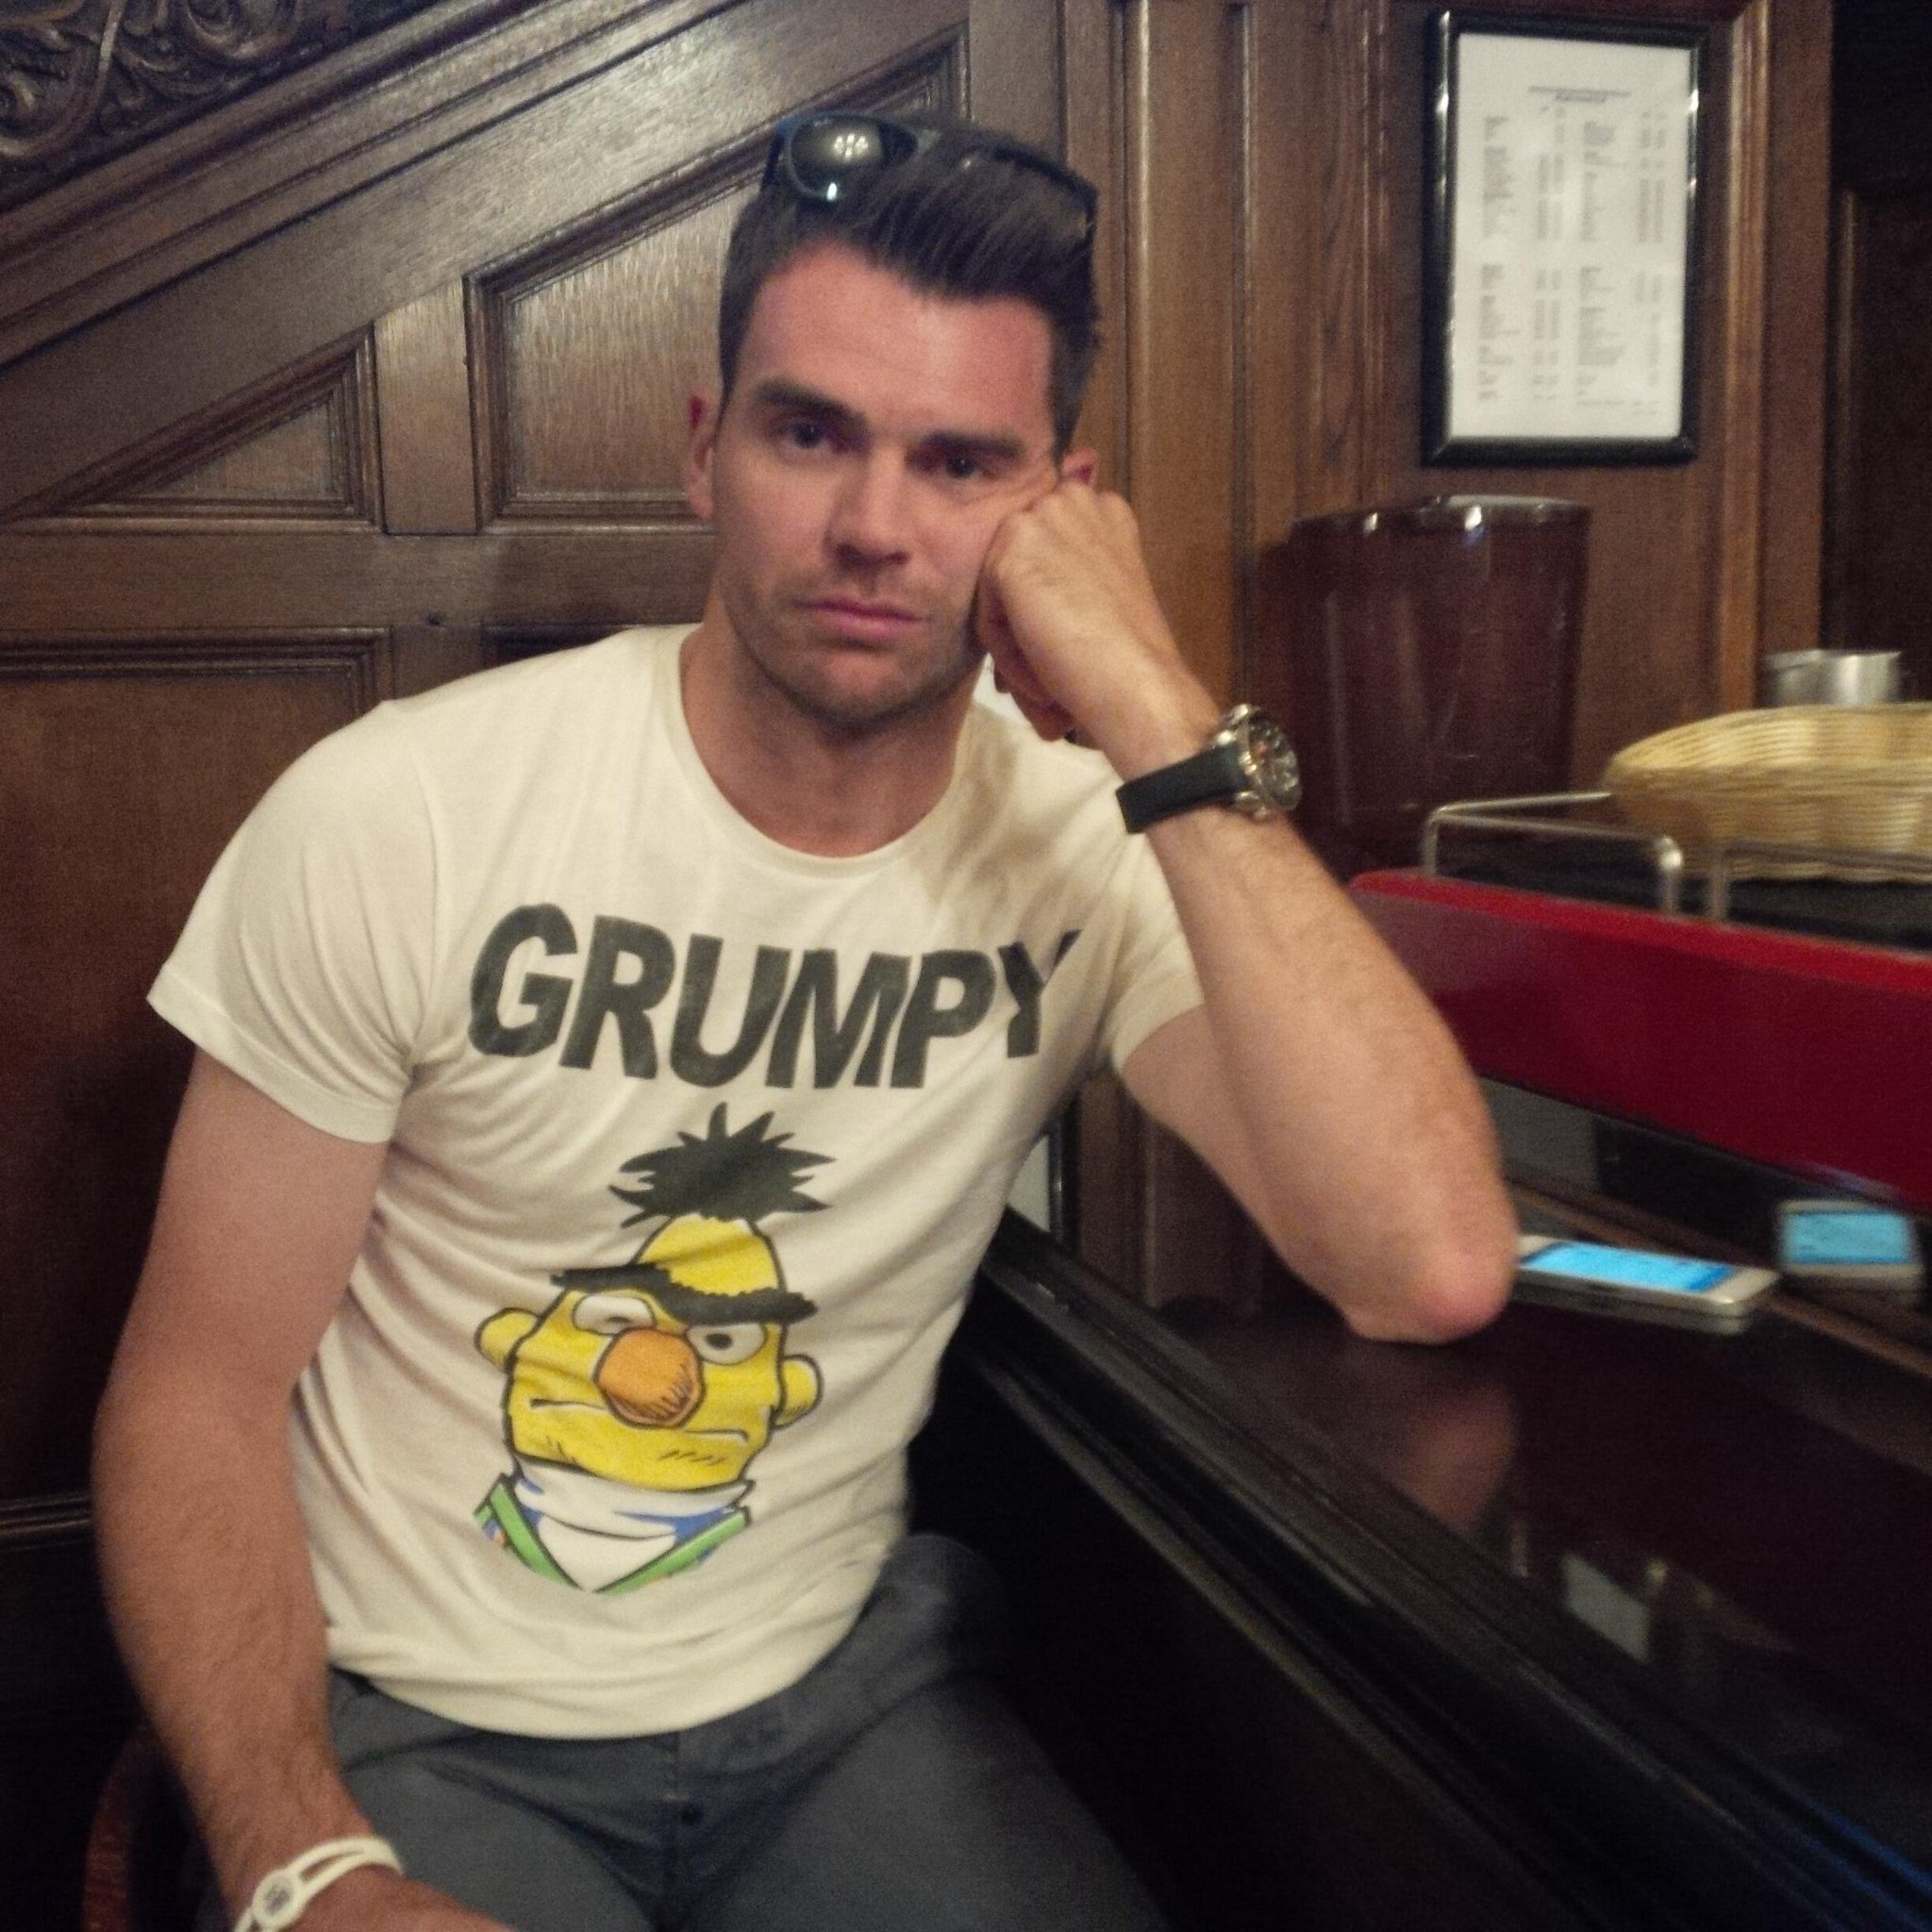 Jimmy looks thrilled with his new t-shirt I got him #miserablesoandso @jimmyanderson9 http://t.co/JAEDx8RKf1